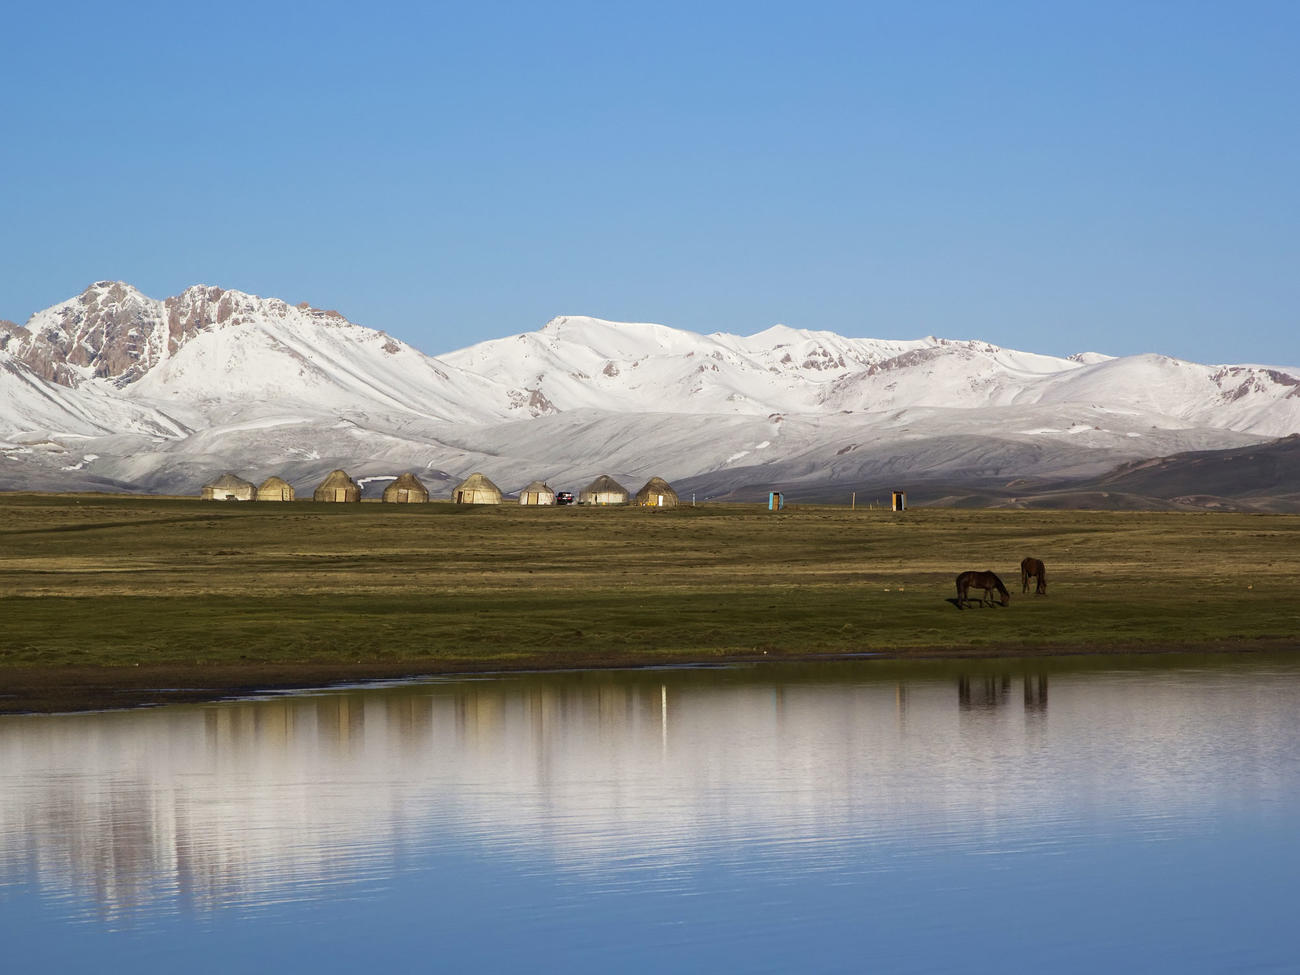 Places to visit in Kyrgyzstan? Lake Sol Kul